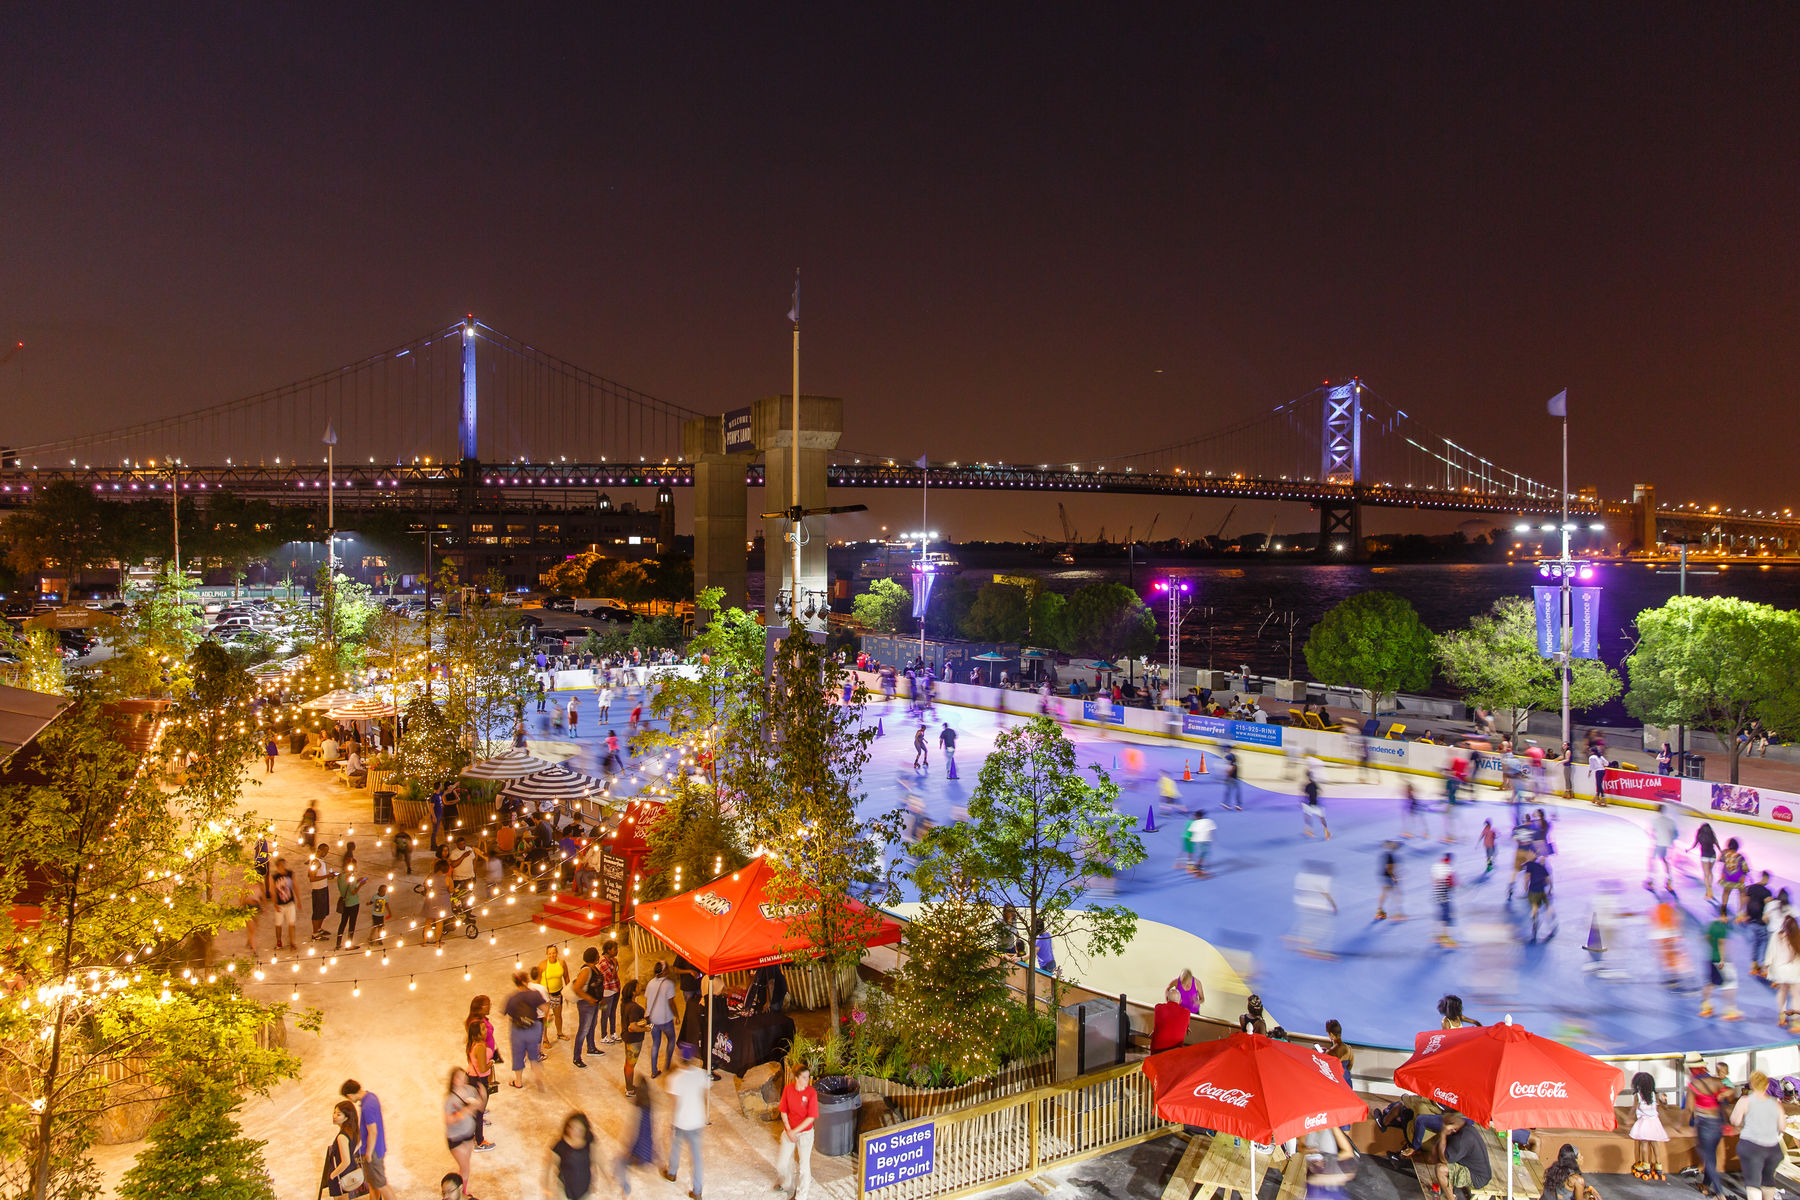 Blue Cross RiverRink Summerfest Comes Alive at Night